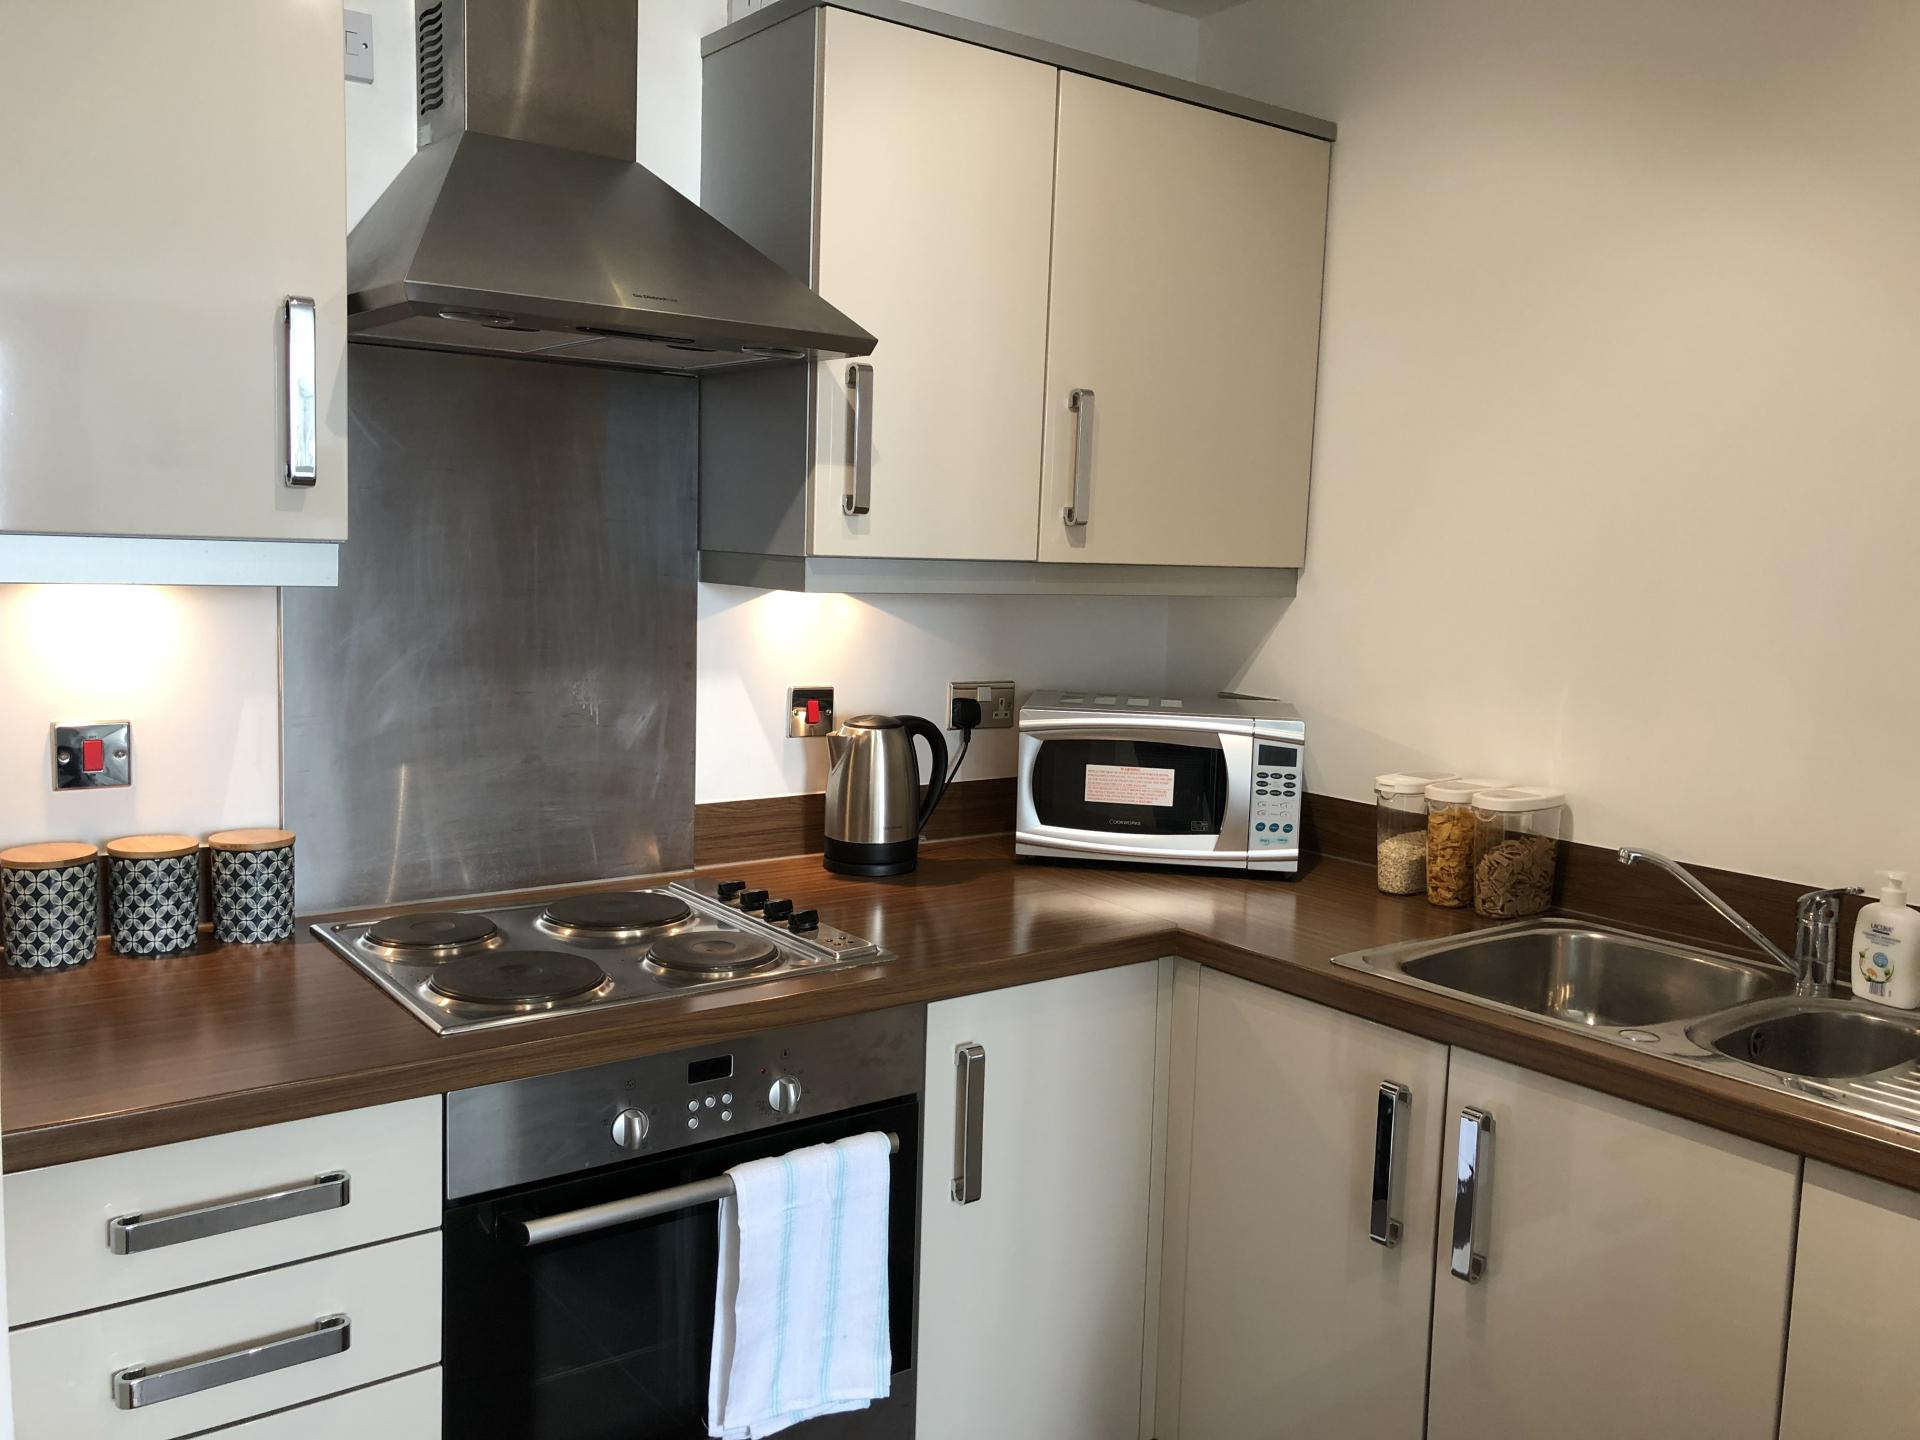 Kitchen at The Hub Serviced Apartments